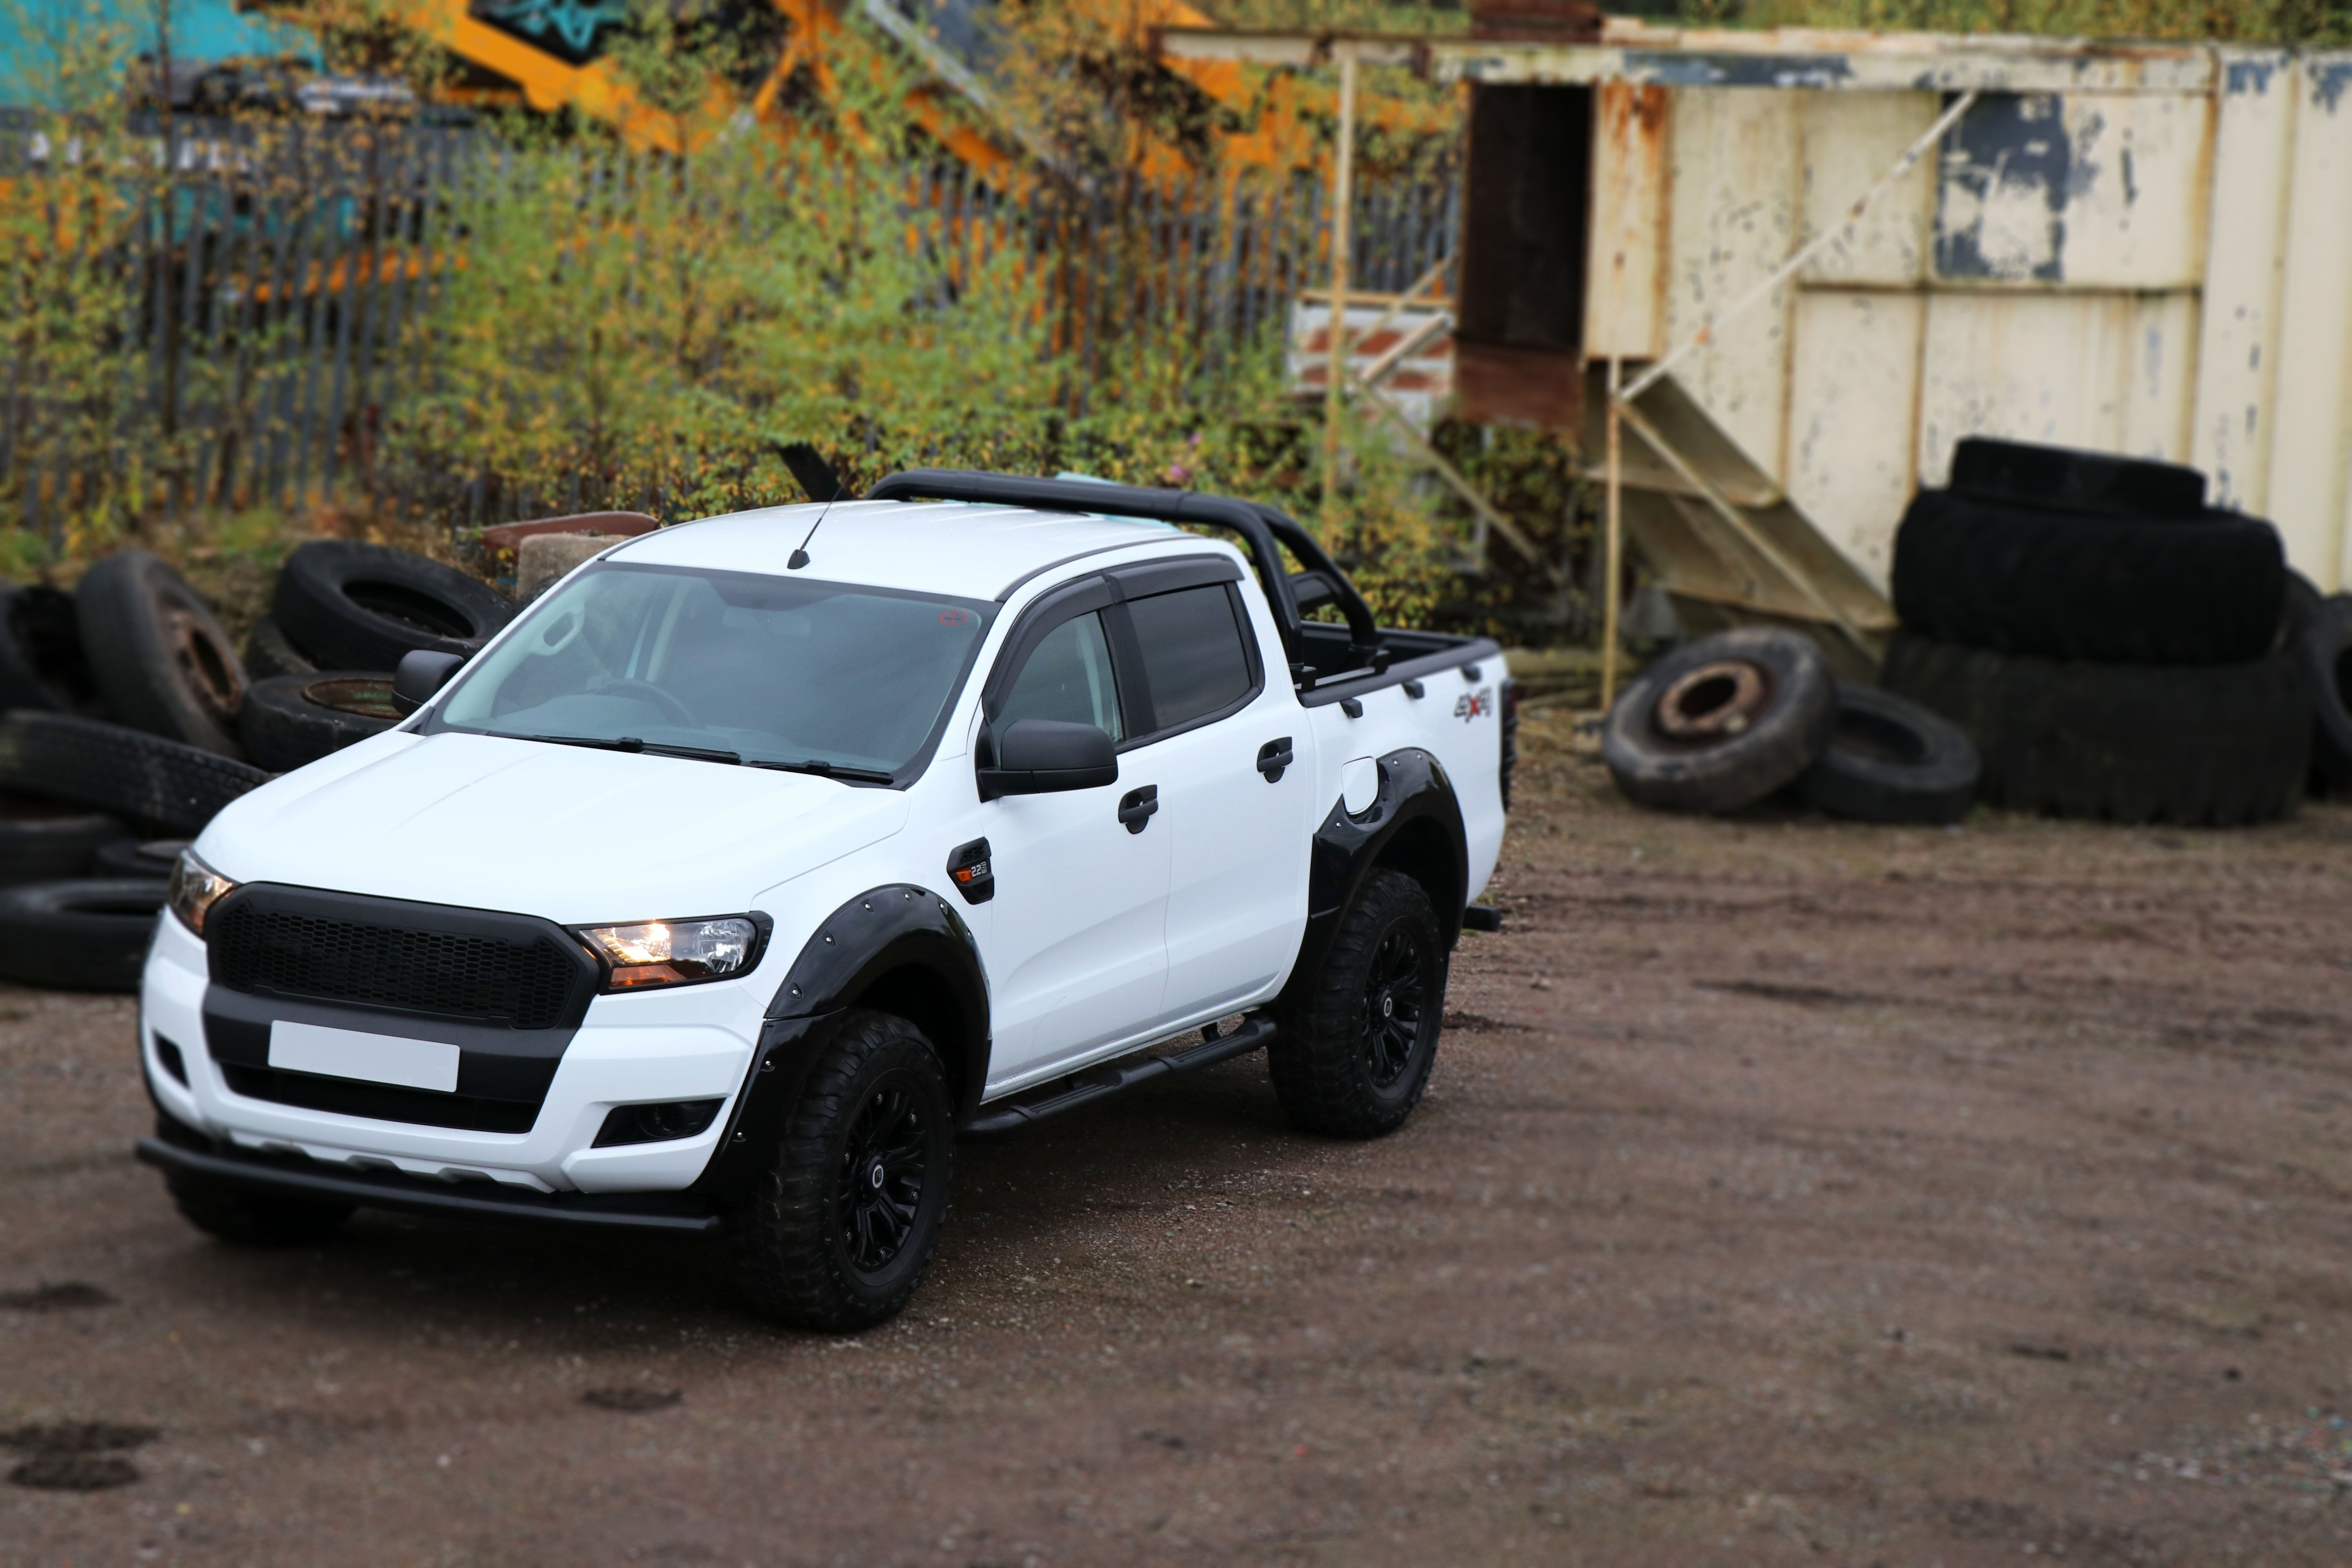 Introducing Our Seeker Raptor Conversion For Pre Owned T7 New Shape Ford Rangers This Seeker T7 Edition Com Ford Ranger For Sale Ford Ranger Used Ford Ranger